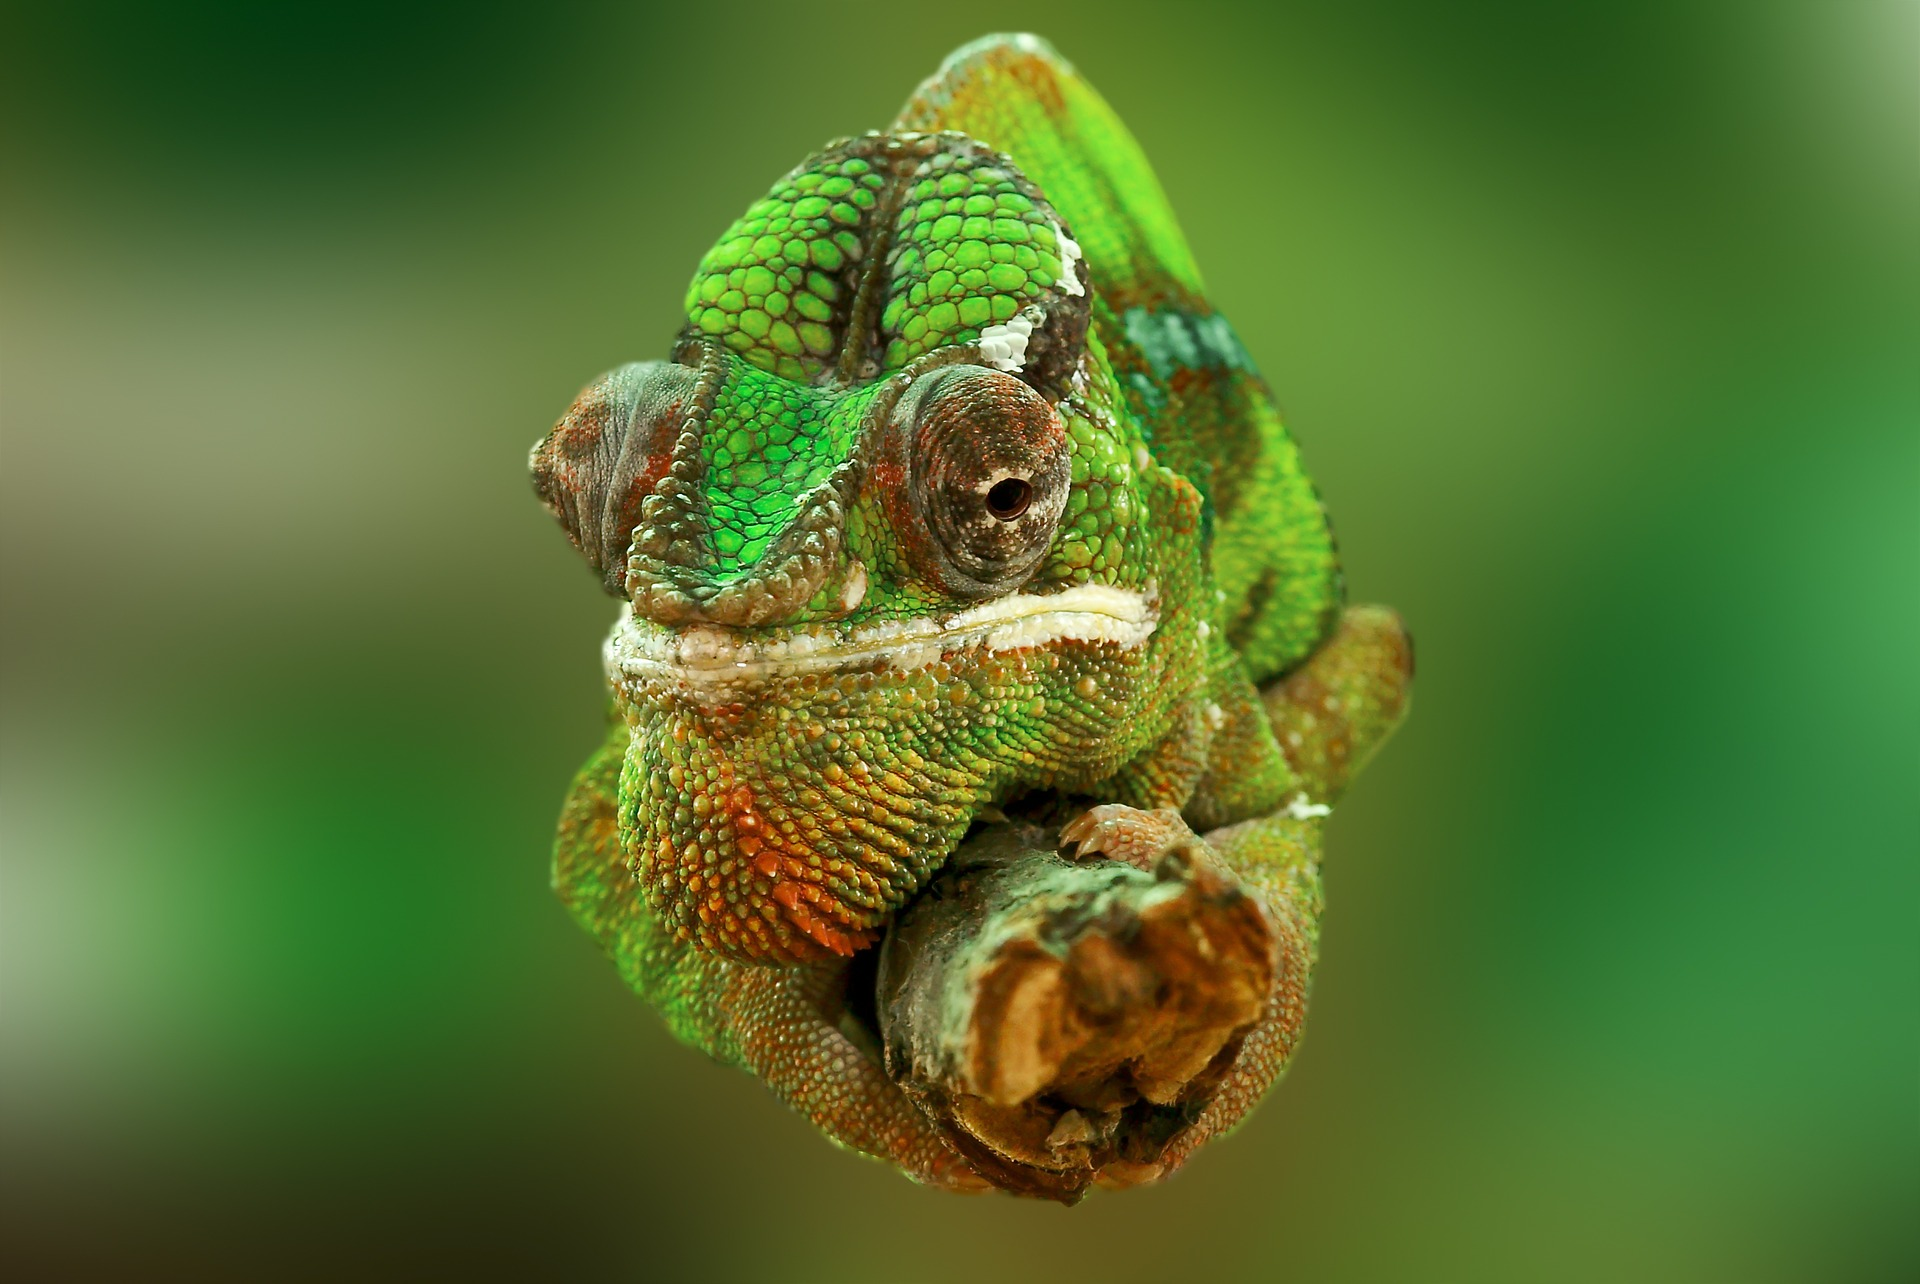 Photo of chameleon on branch